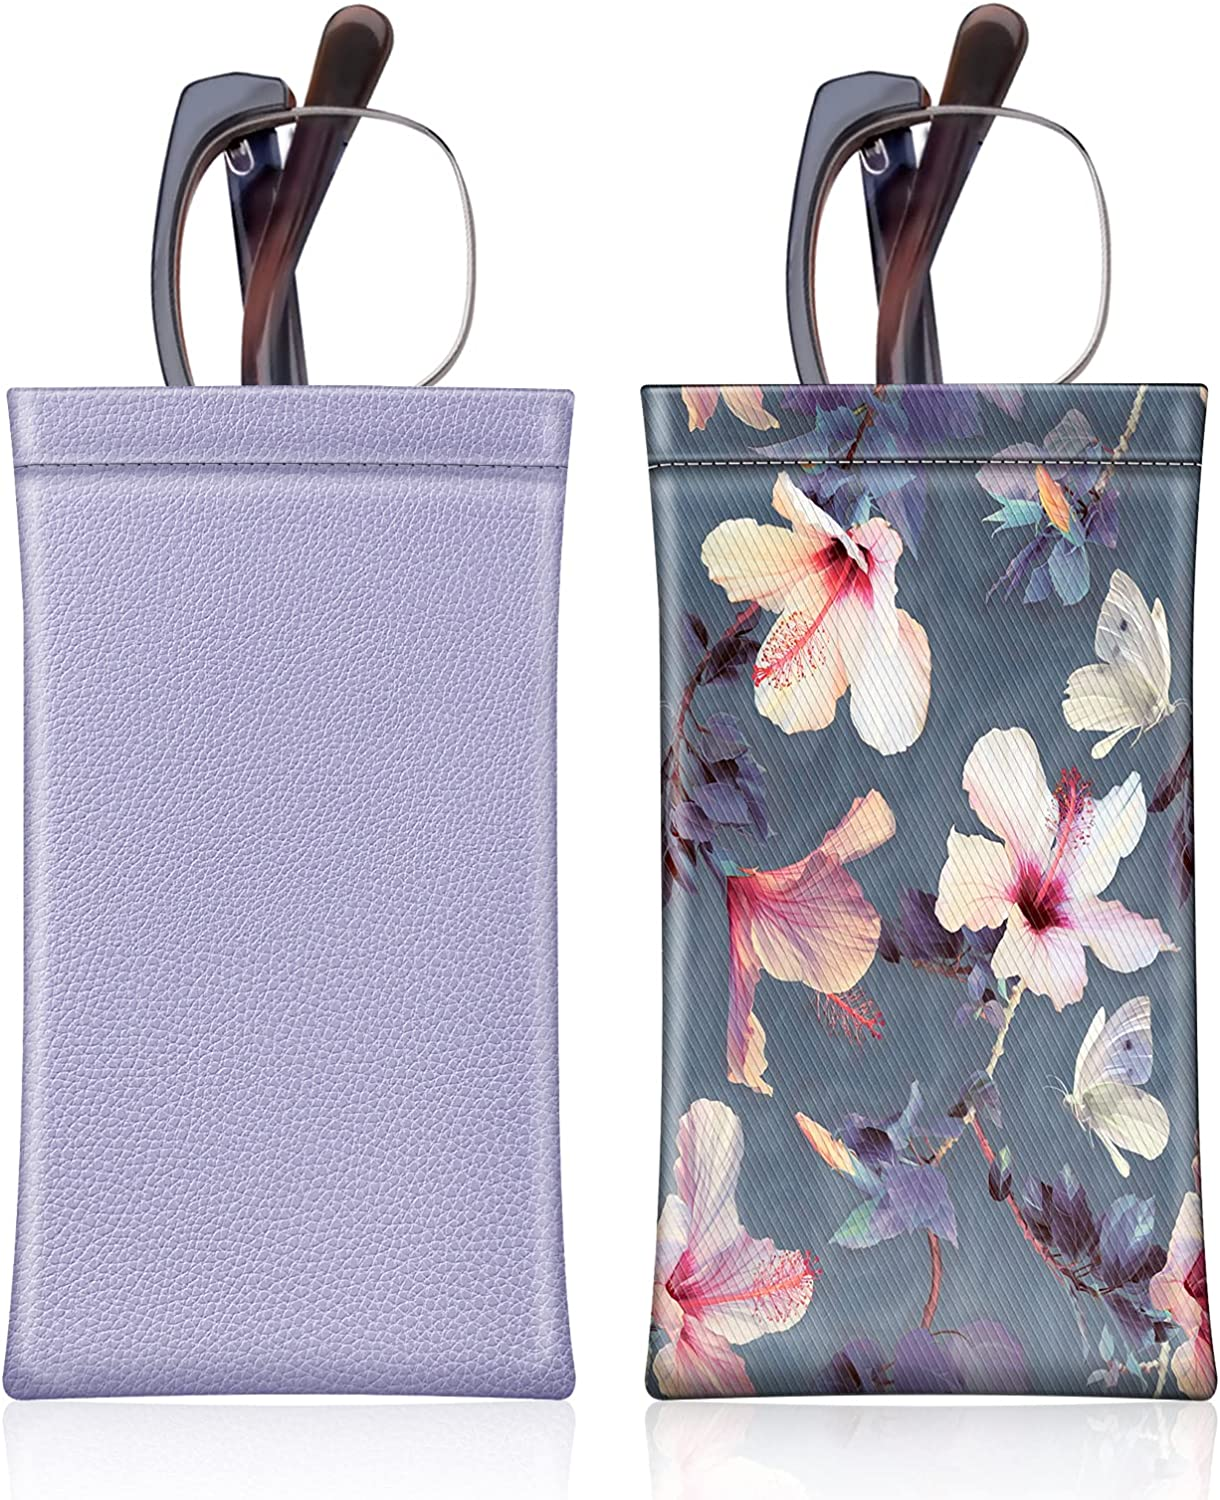 2 Pack Fintie Eyeglasses Pouch Portable S Cloth Limited price sale El Paso Mall with Cleaning